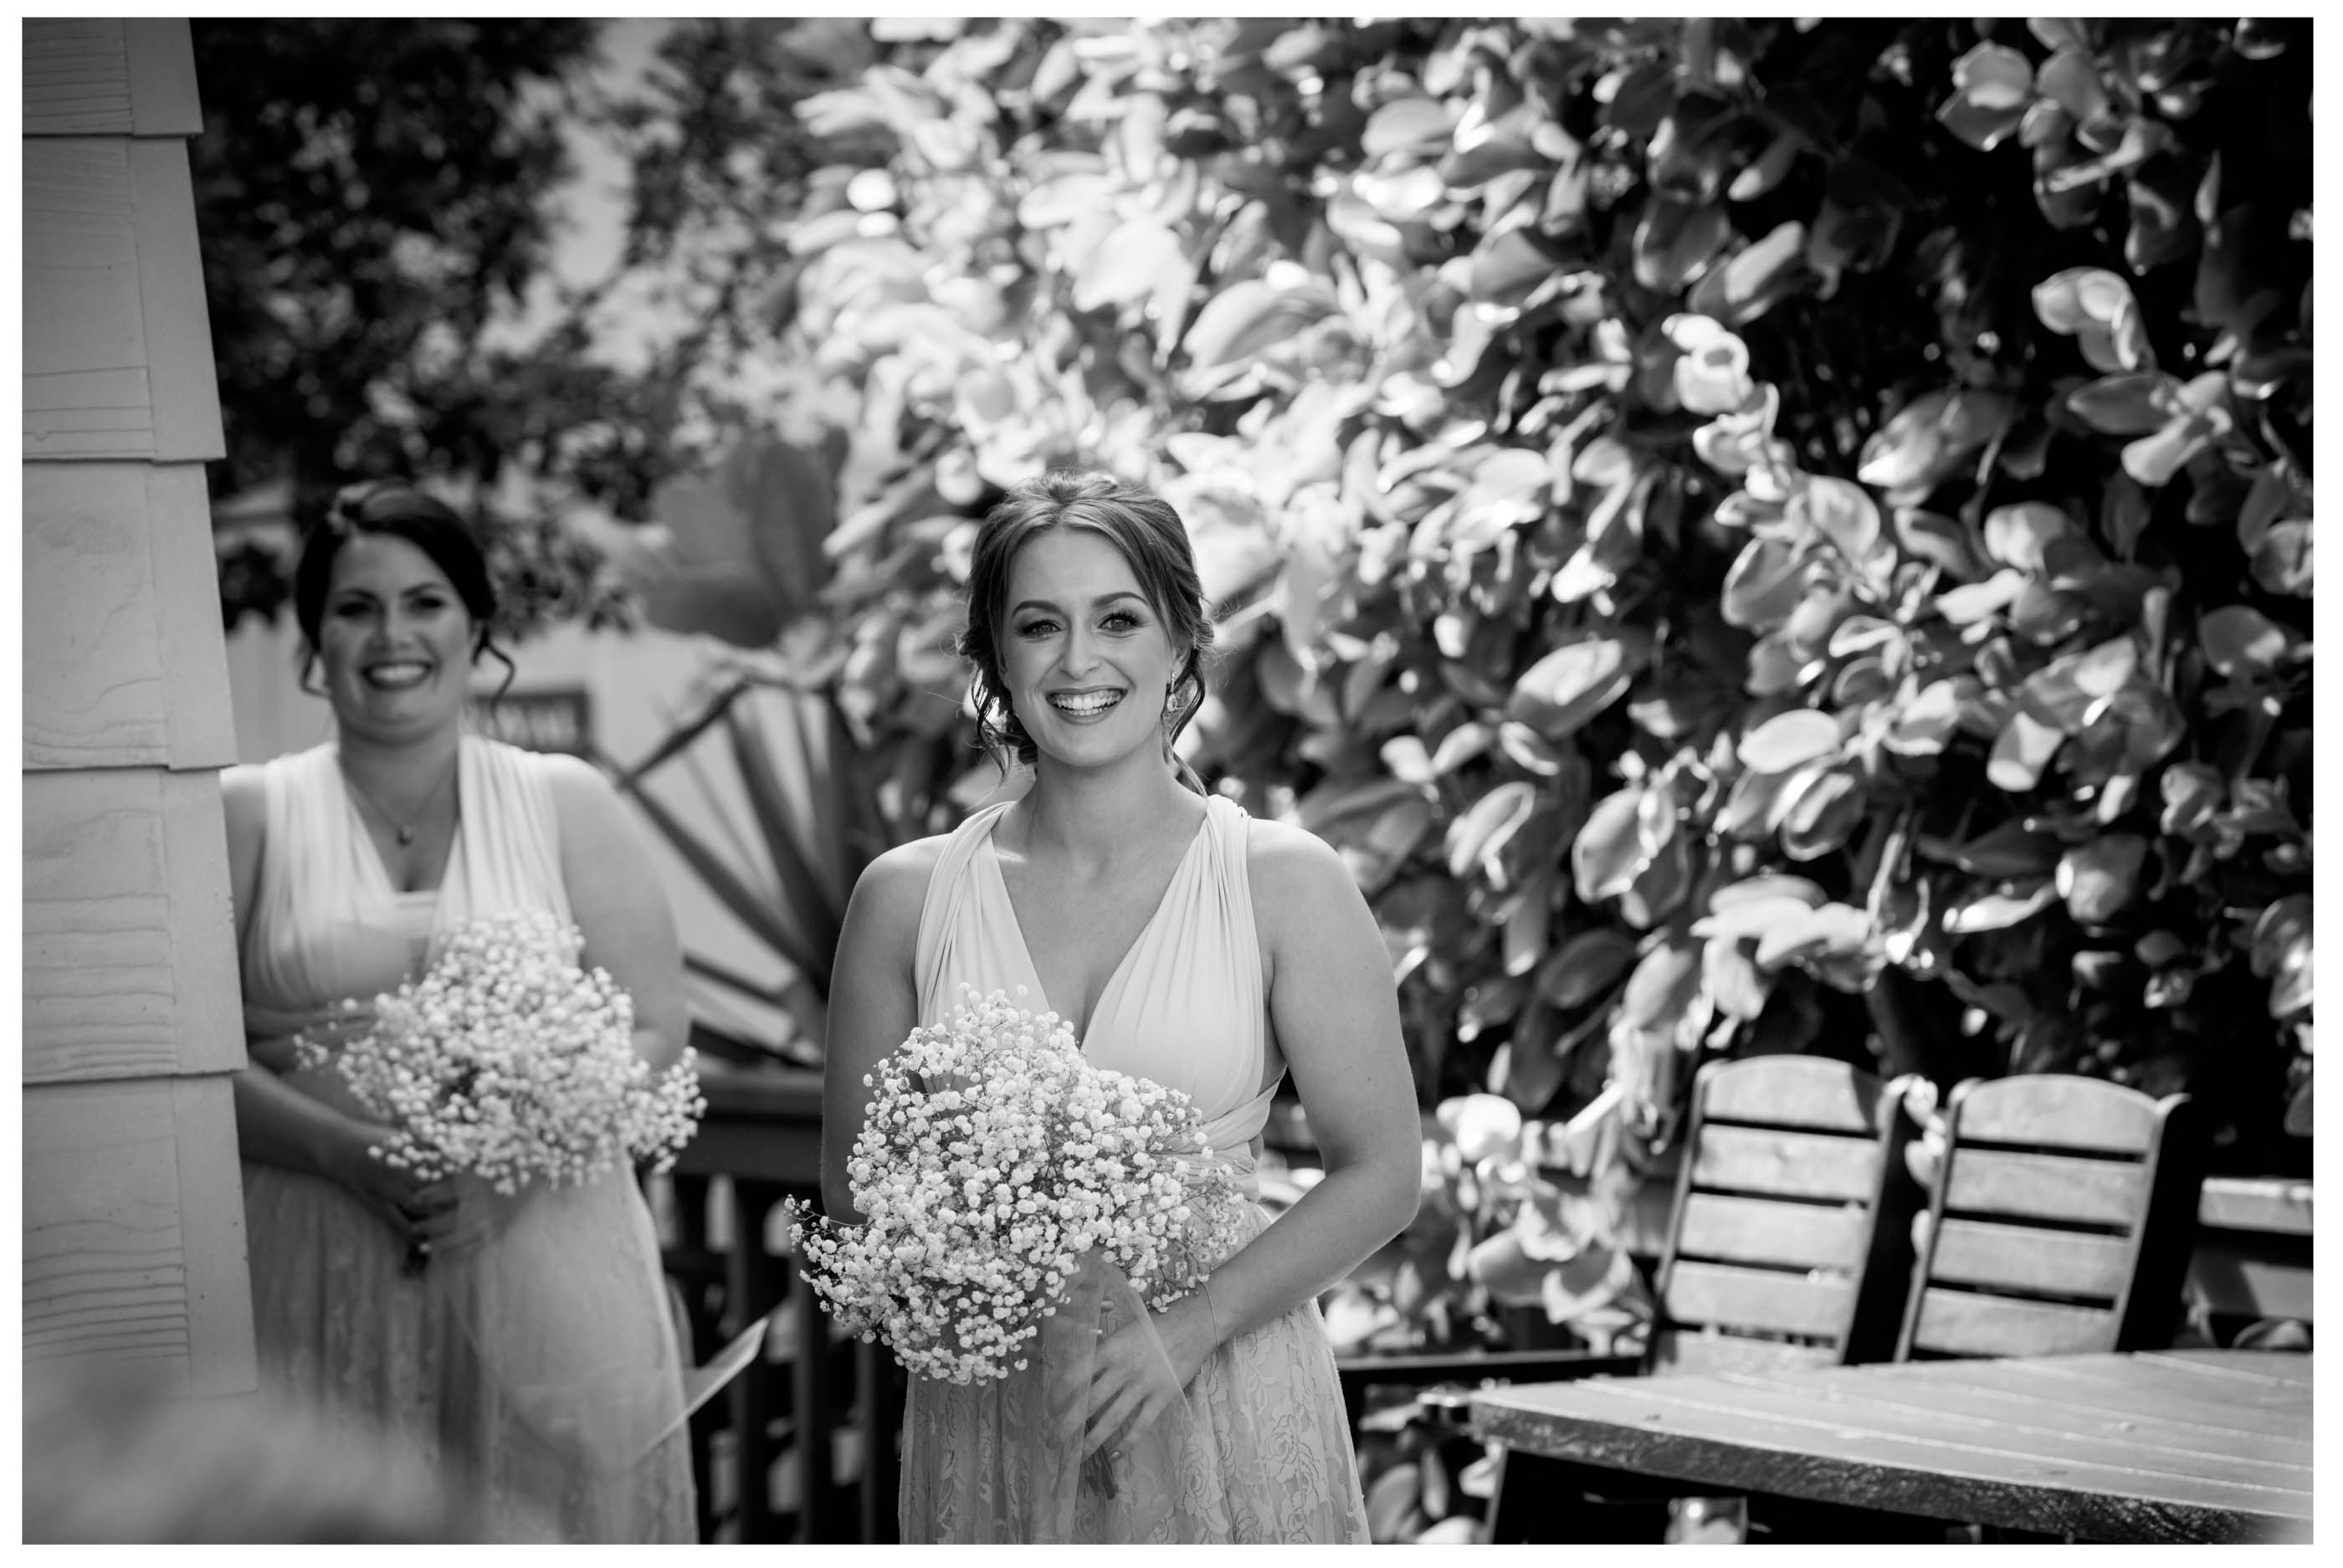 bridesmaid walks dowphoton isle. Black and white